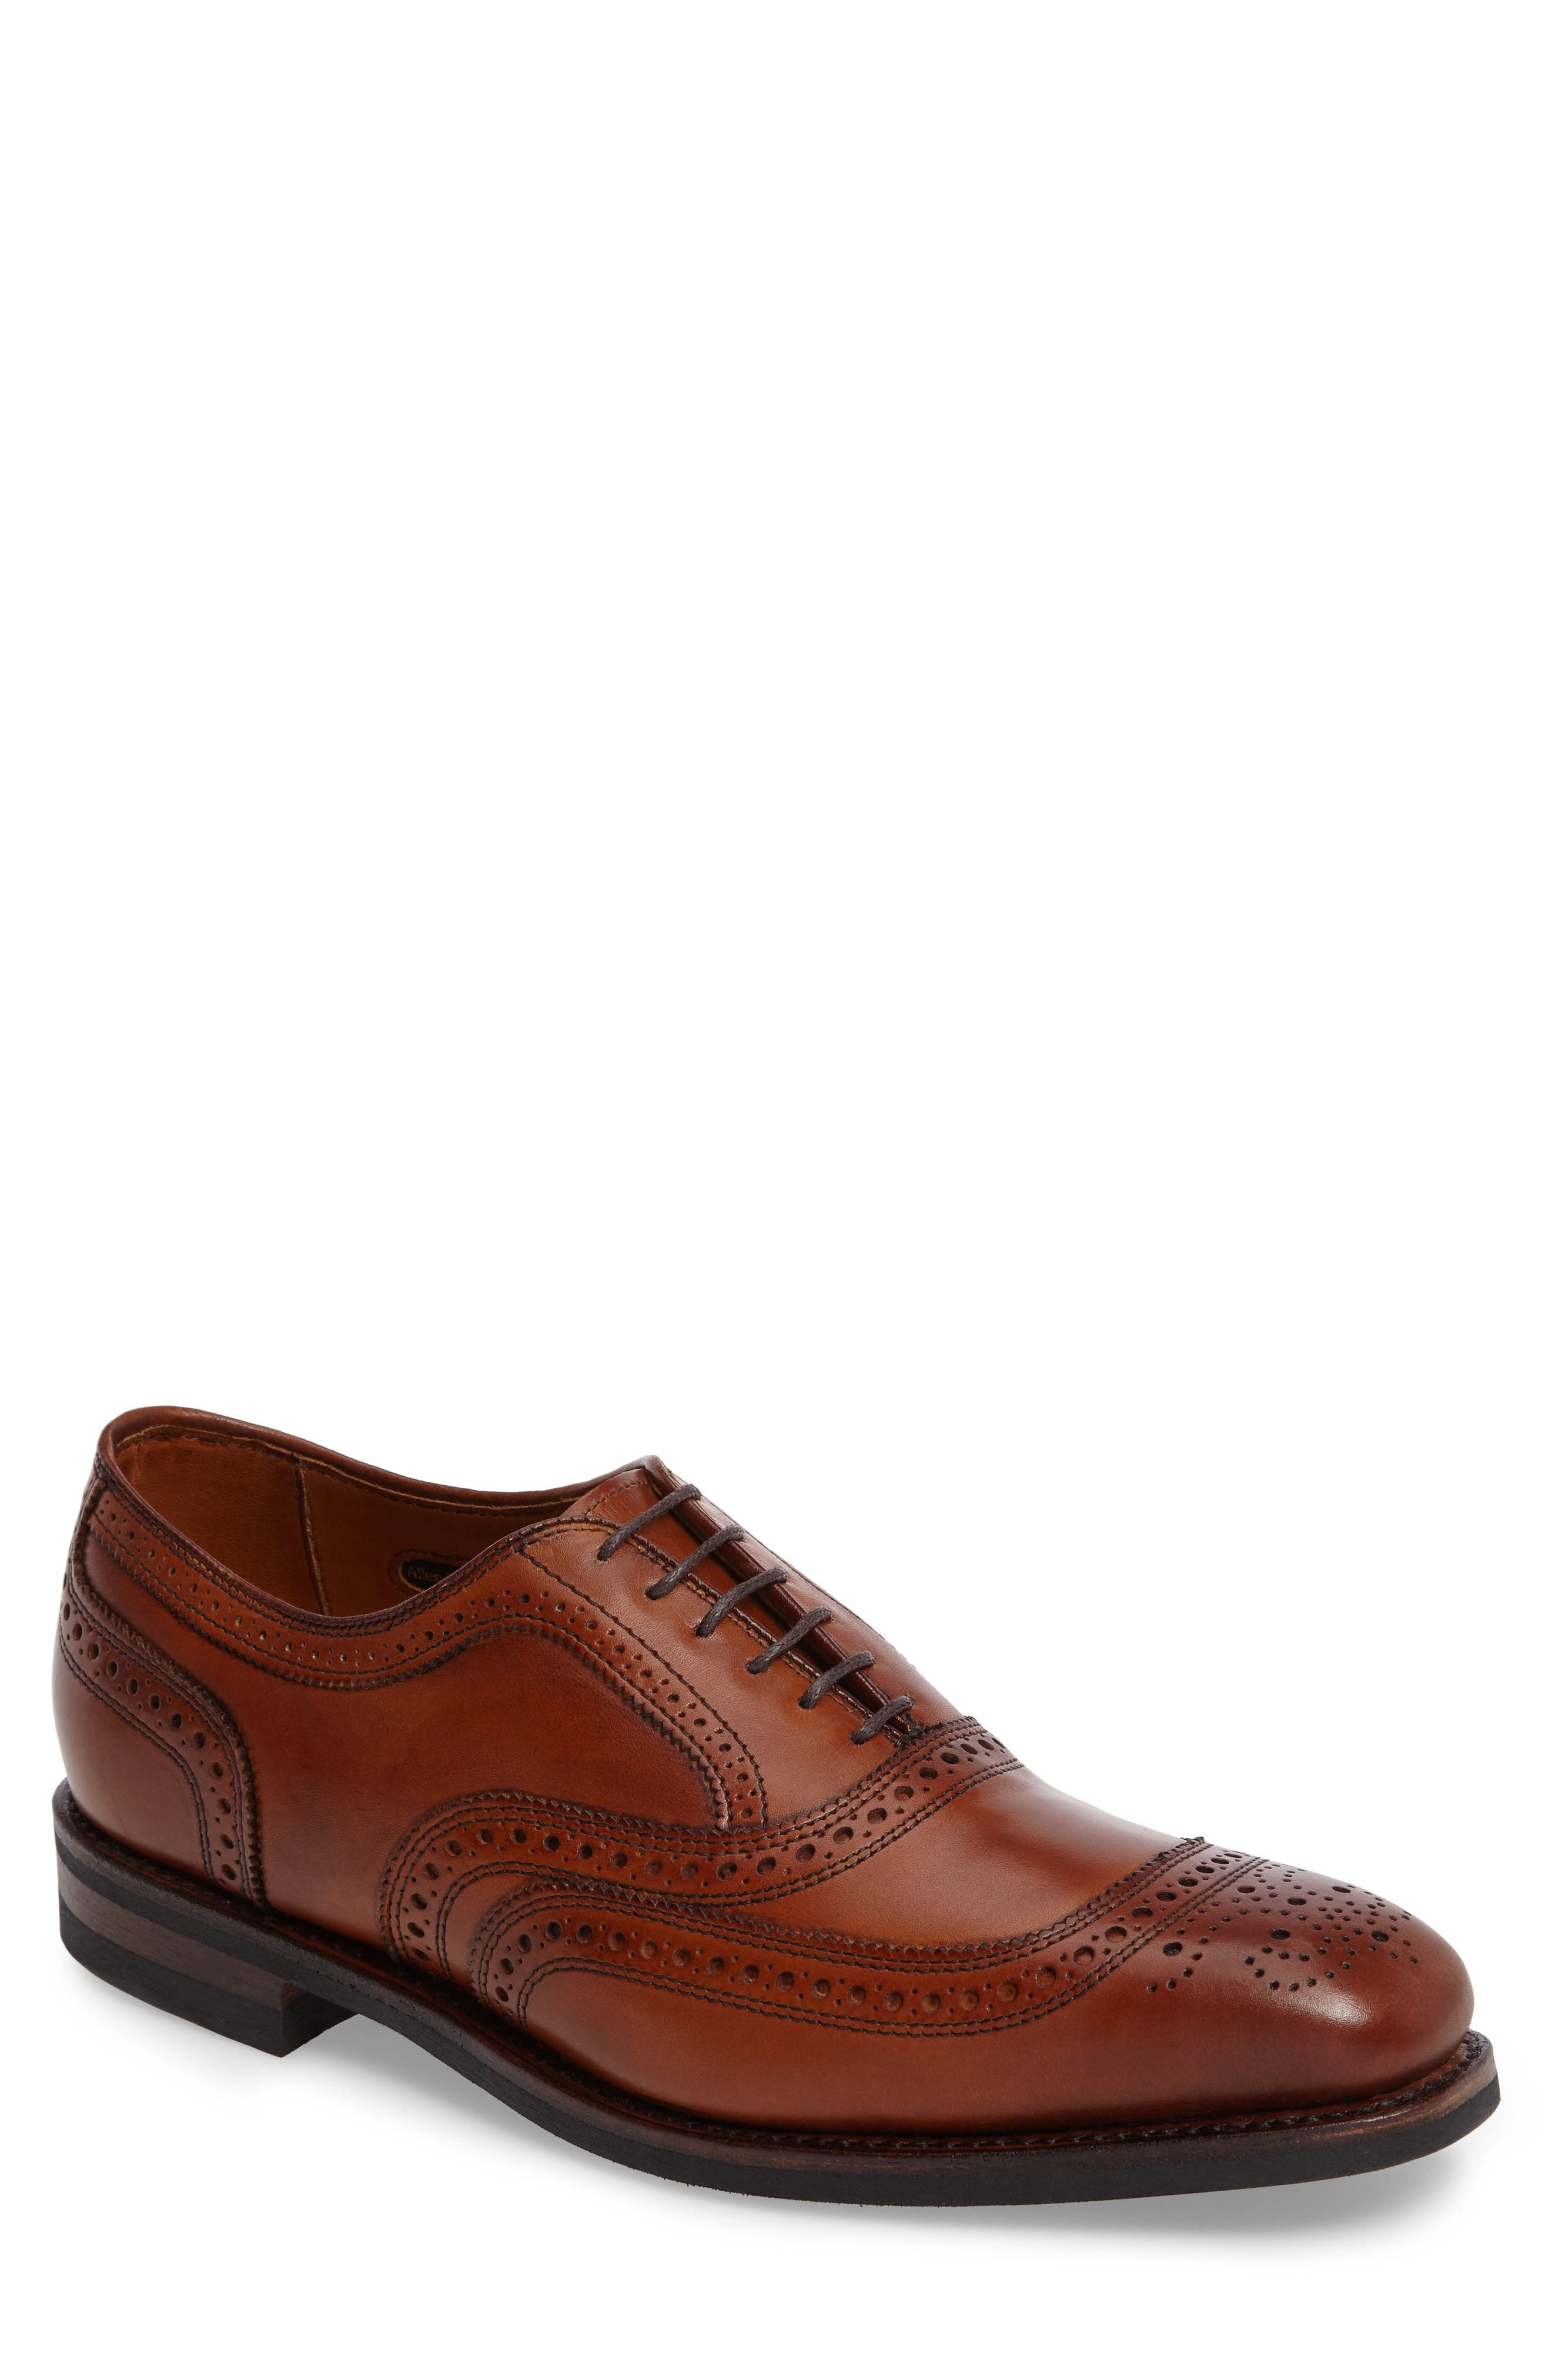 Alternate Image 1 Selected - Allen Edmonds 'University' Wingtip (Men)